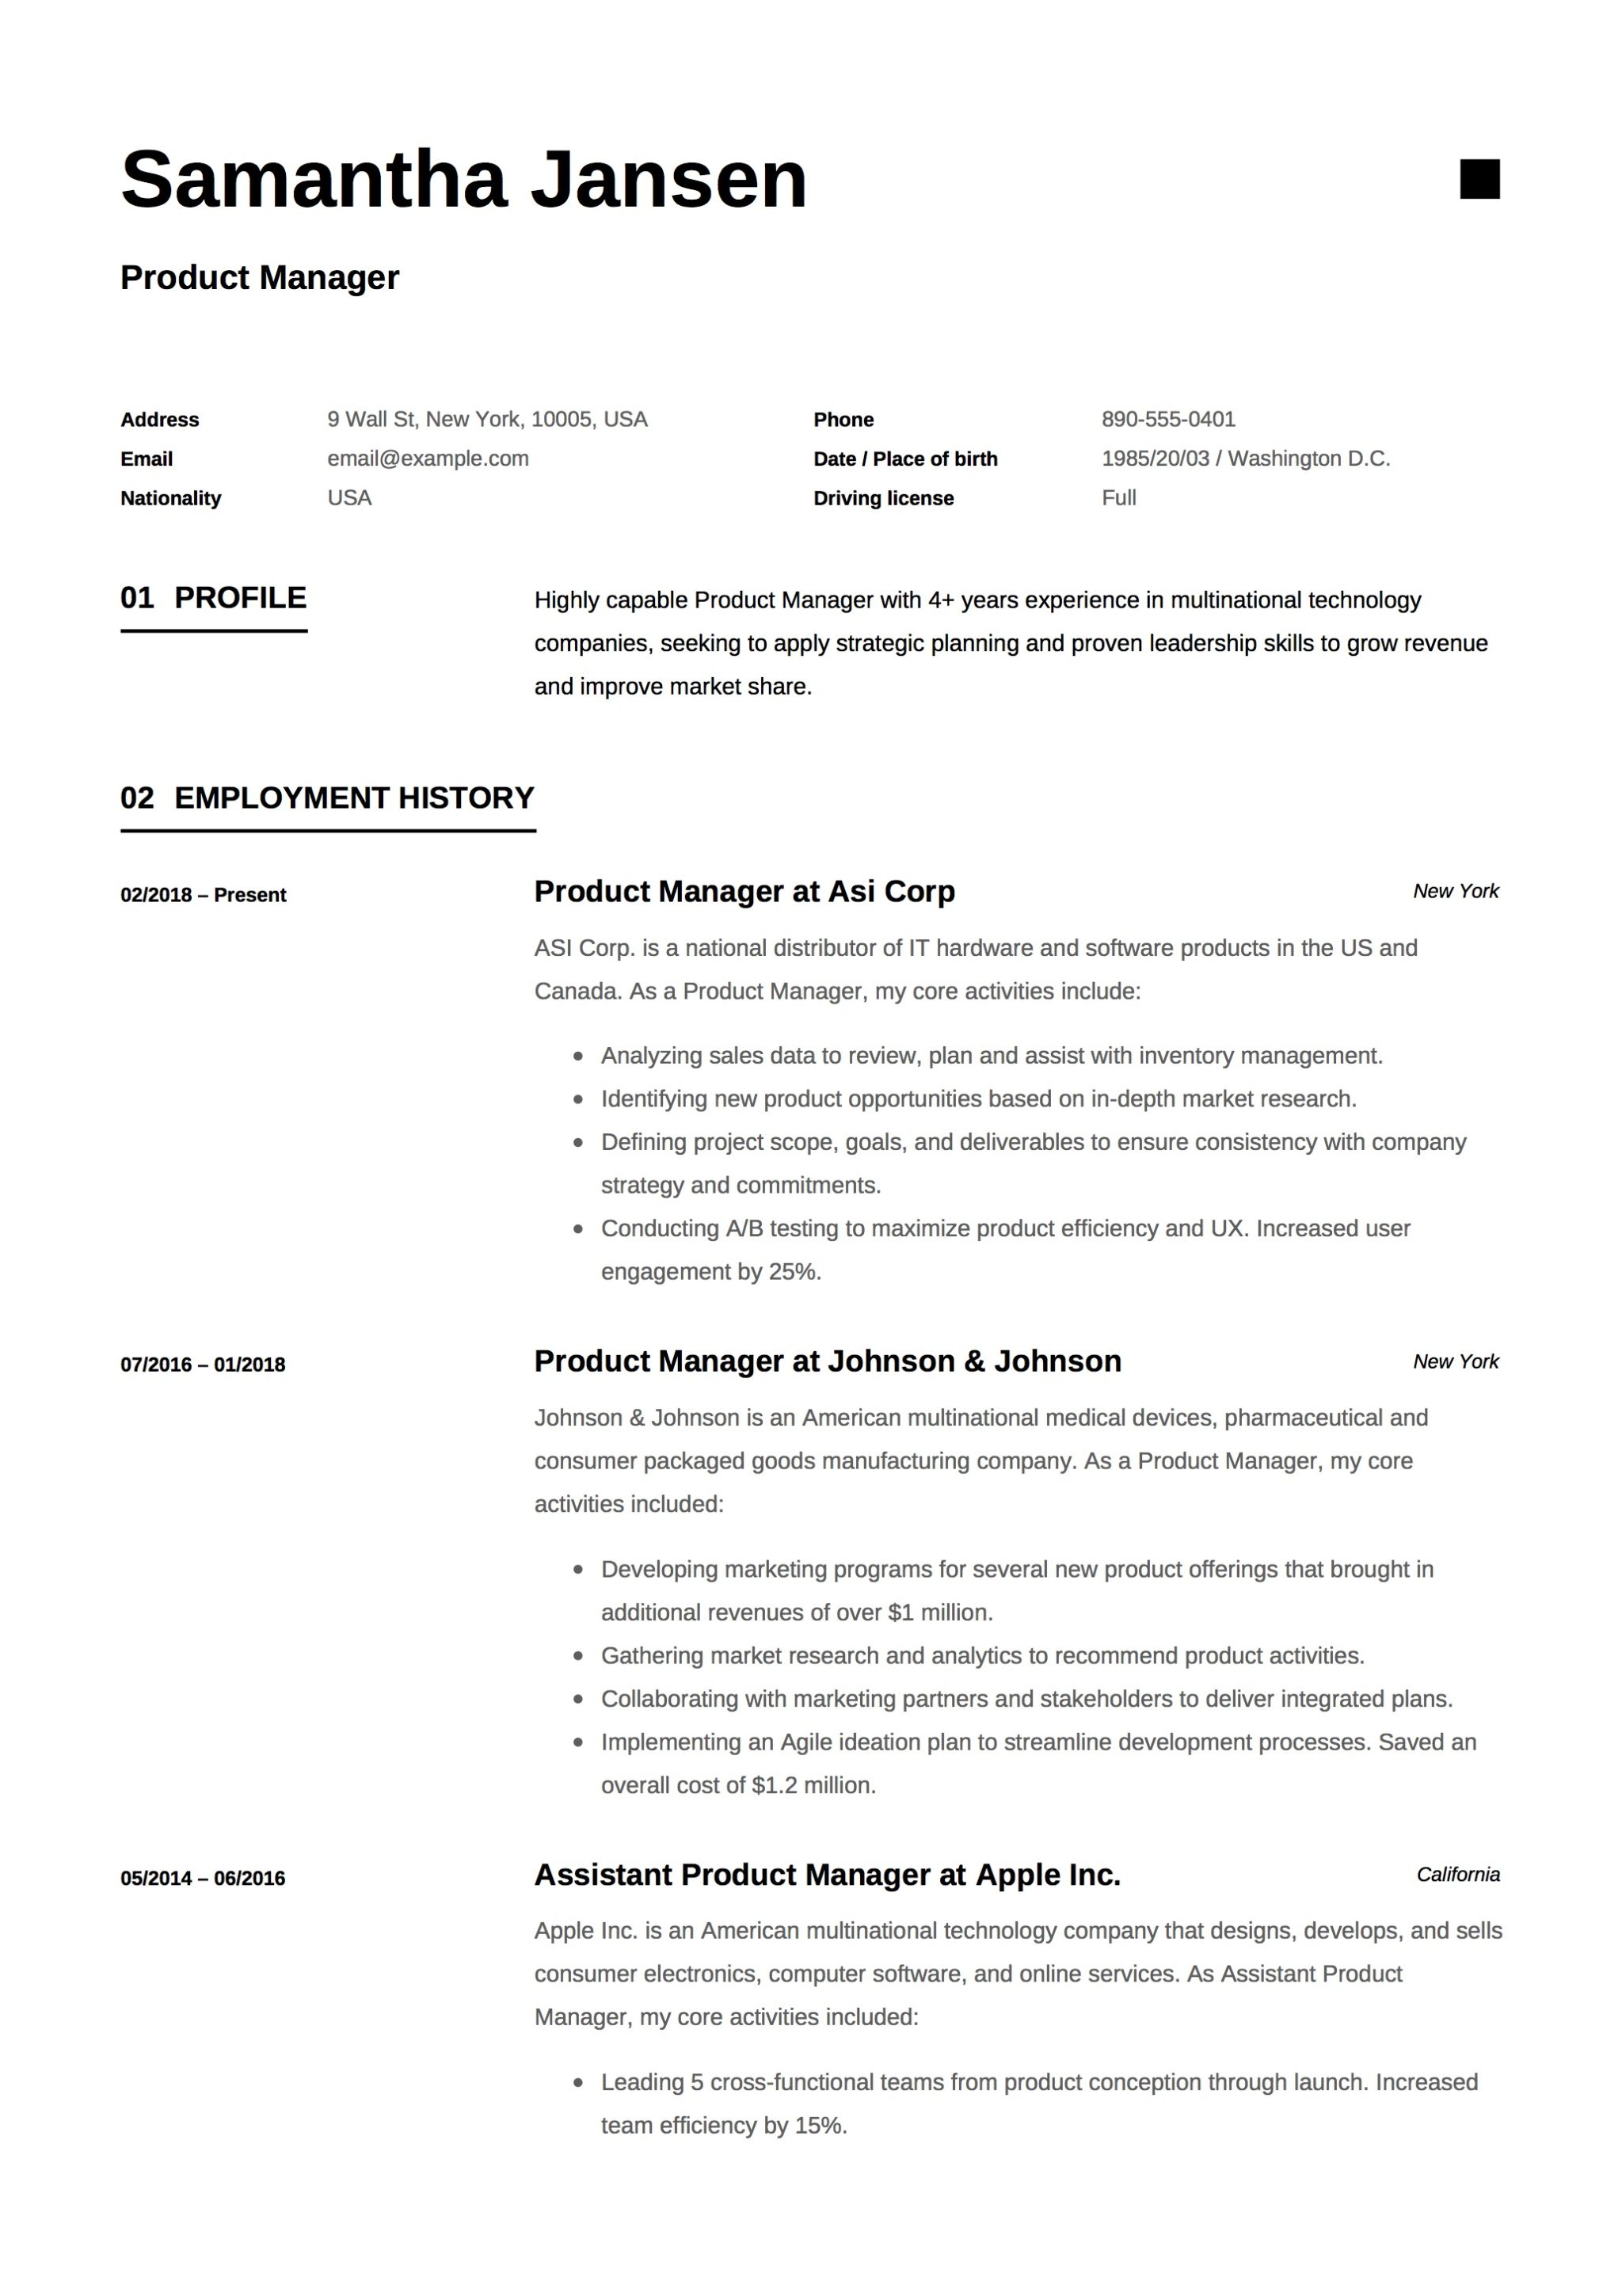 product manager resume sample design - Product Line Manager Resume Sample